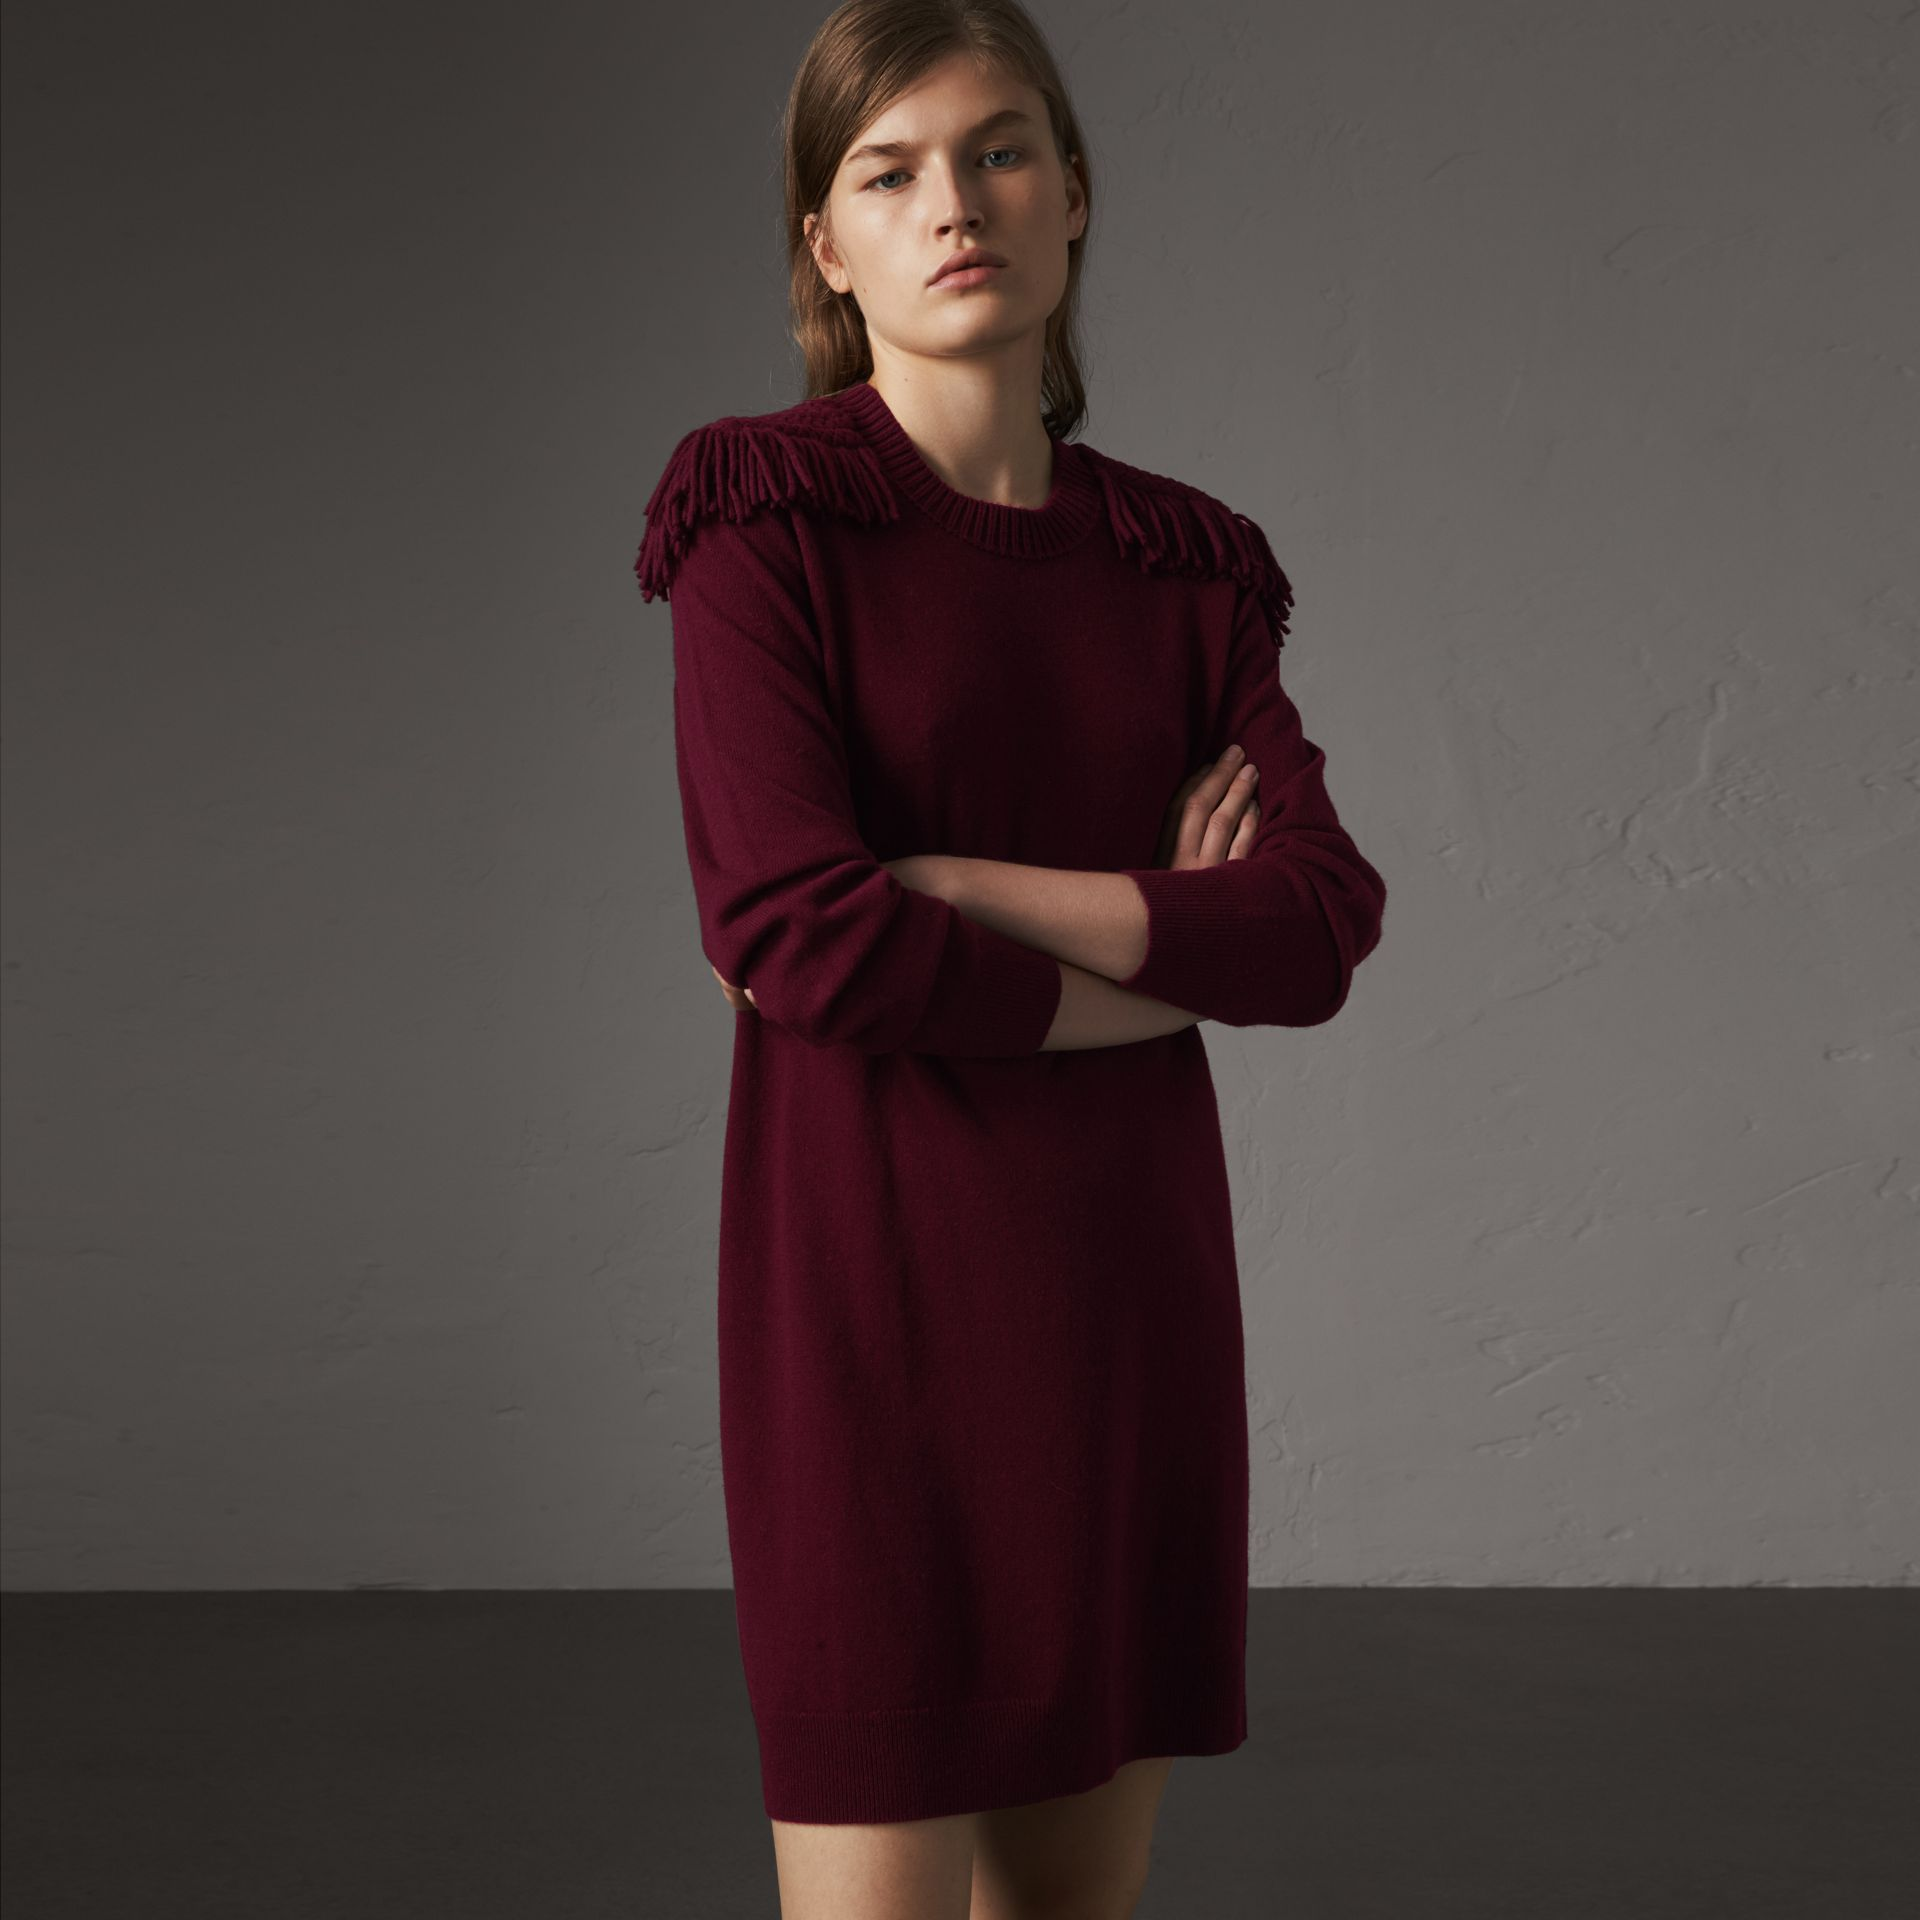 Epaulette Detail Wool Cashmere Dress in Burgundy - Women | Burberry United Kingdom - gallery image 0